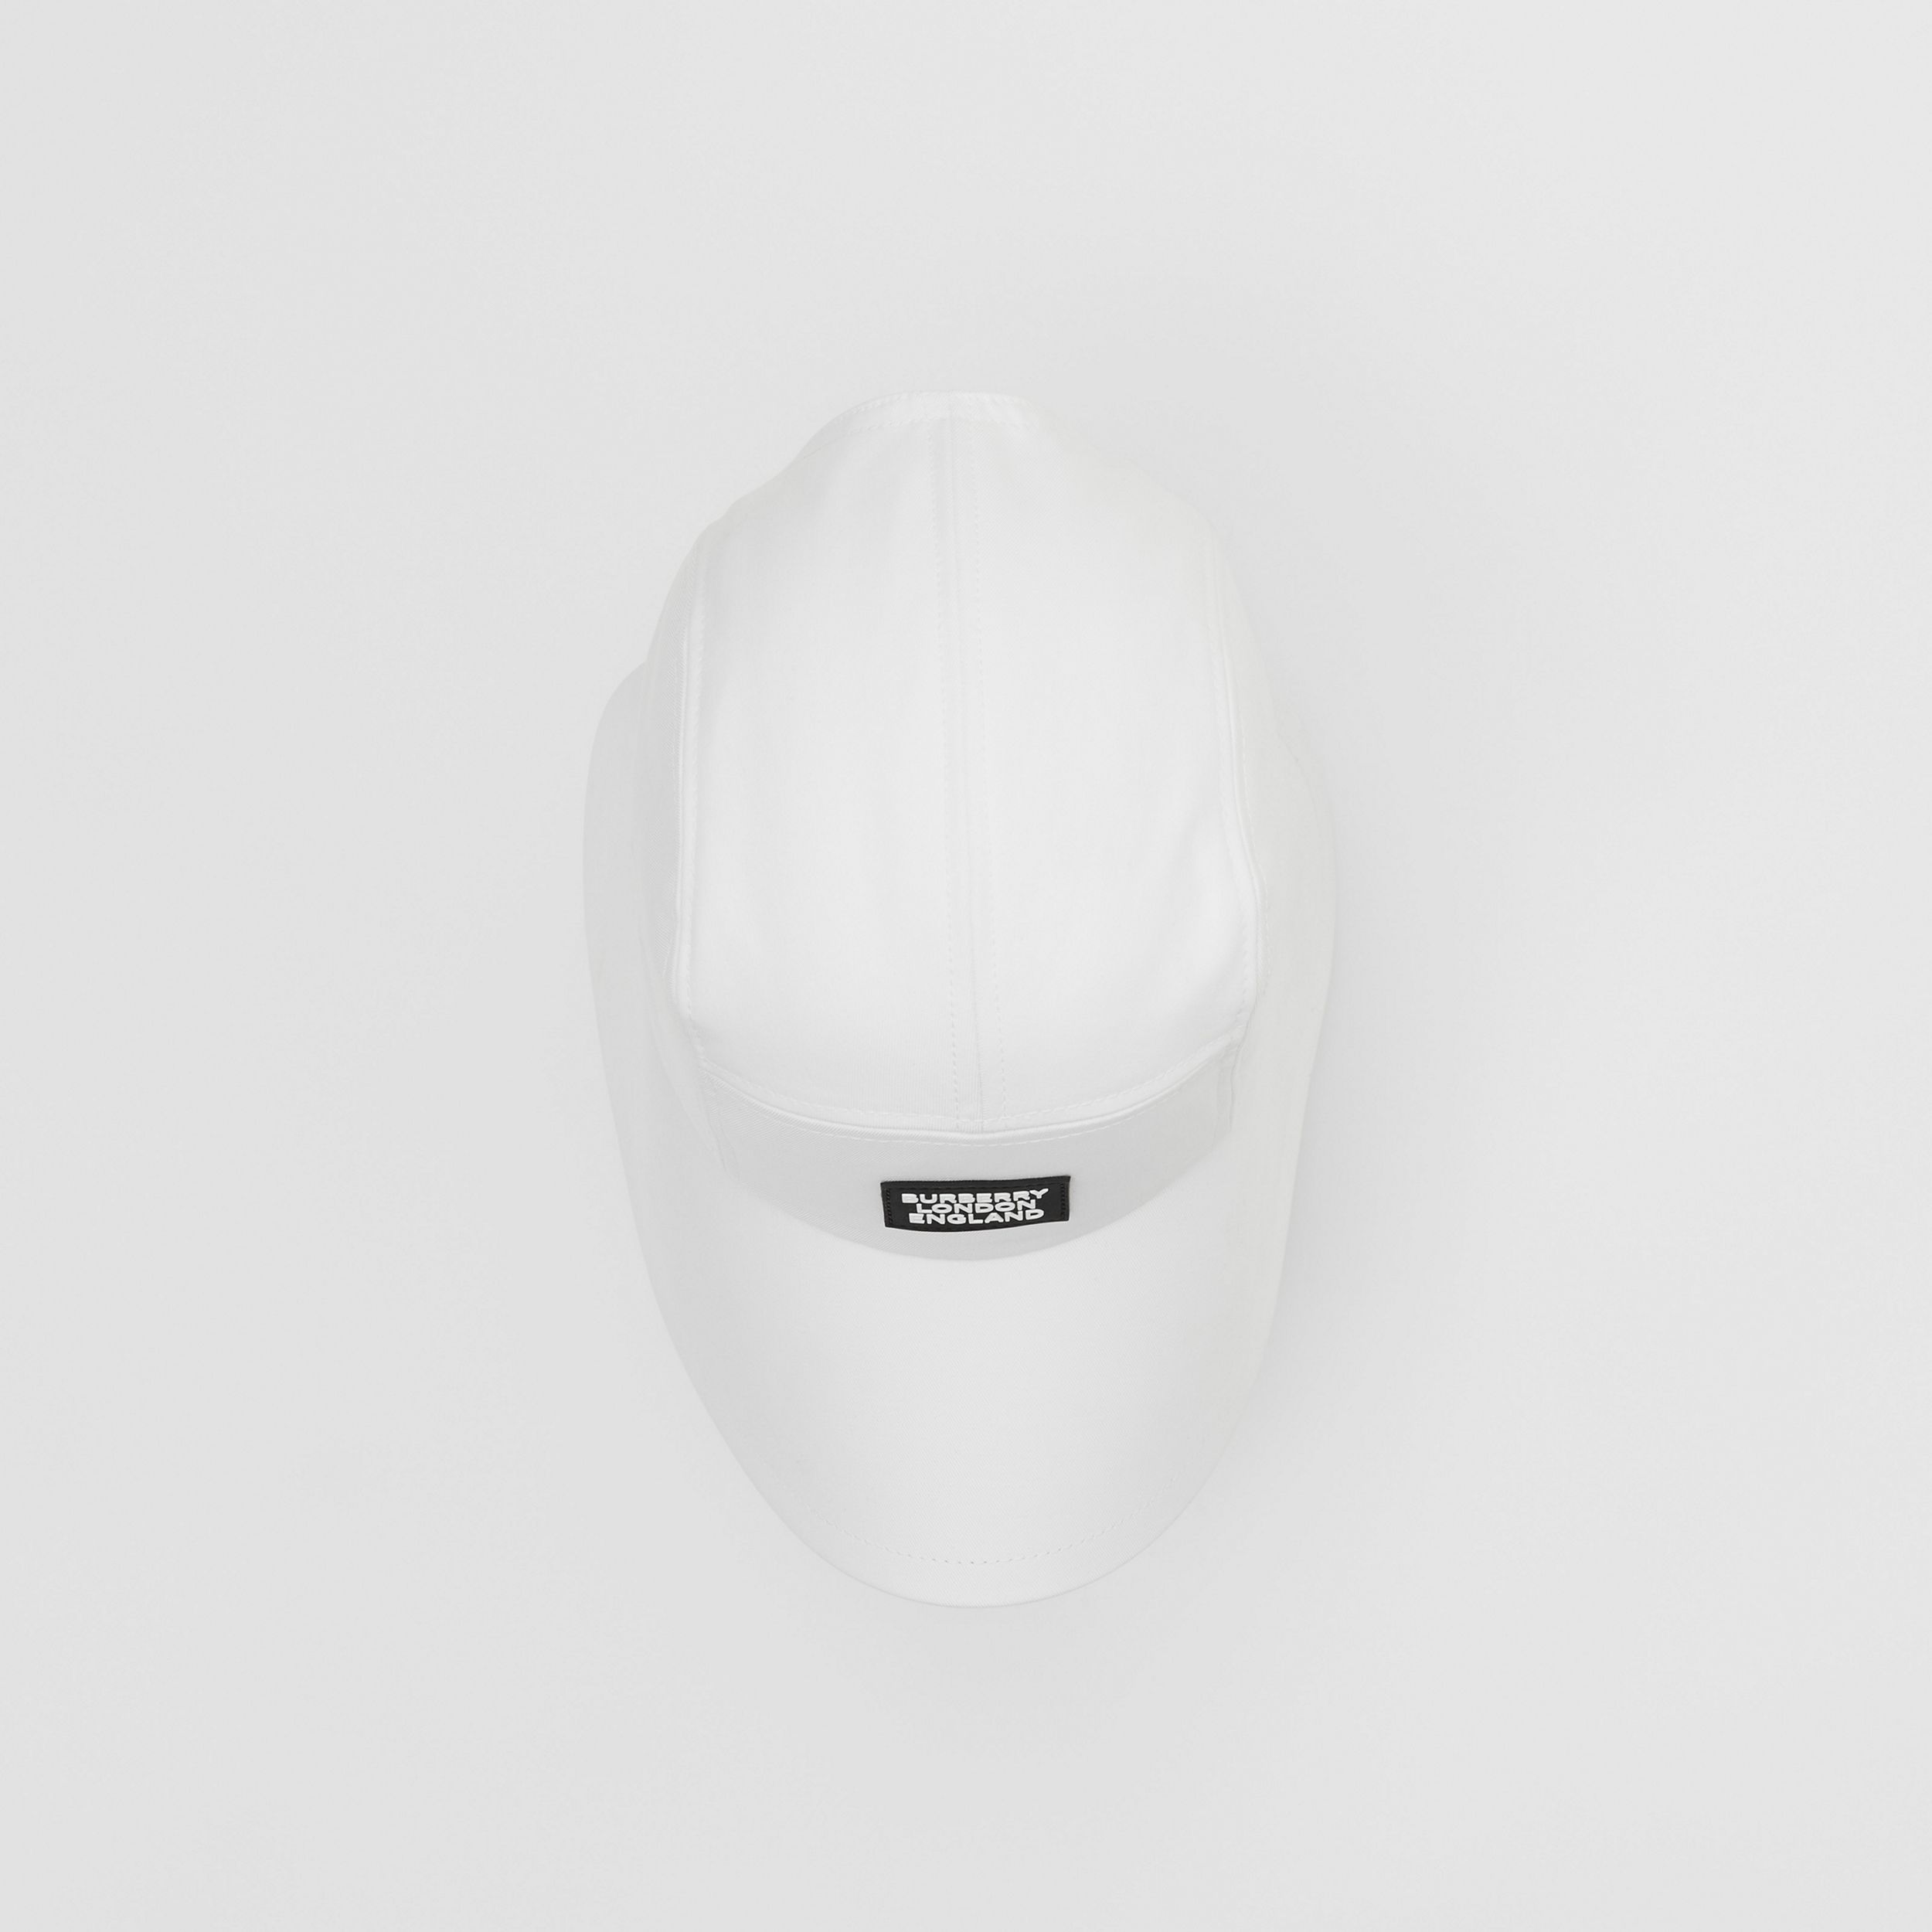 Logo Appliqué Cotton Bonnet Cap in Optic White | Burberry Singapore - 4